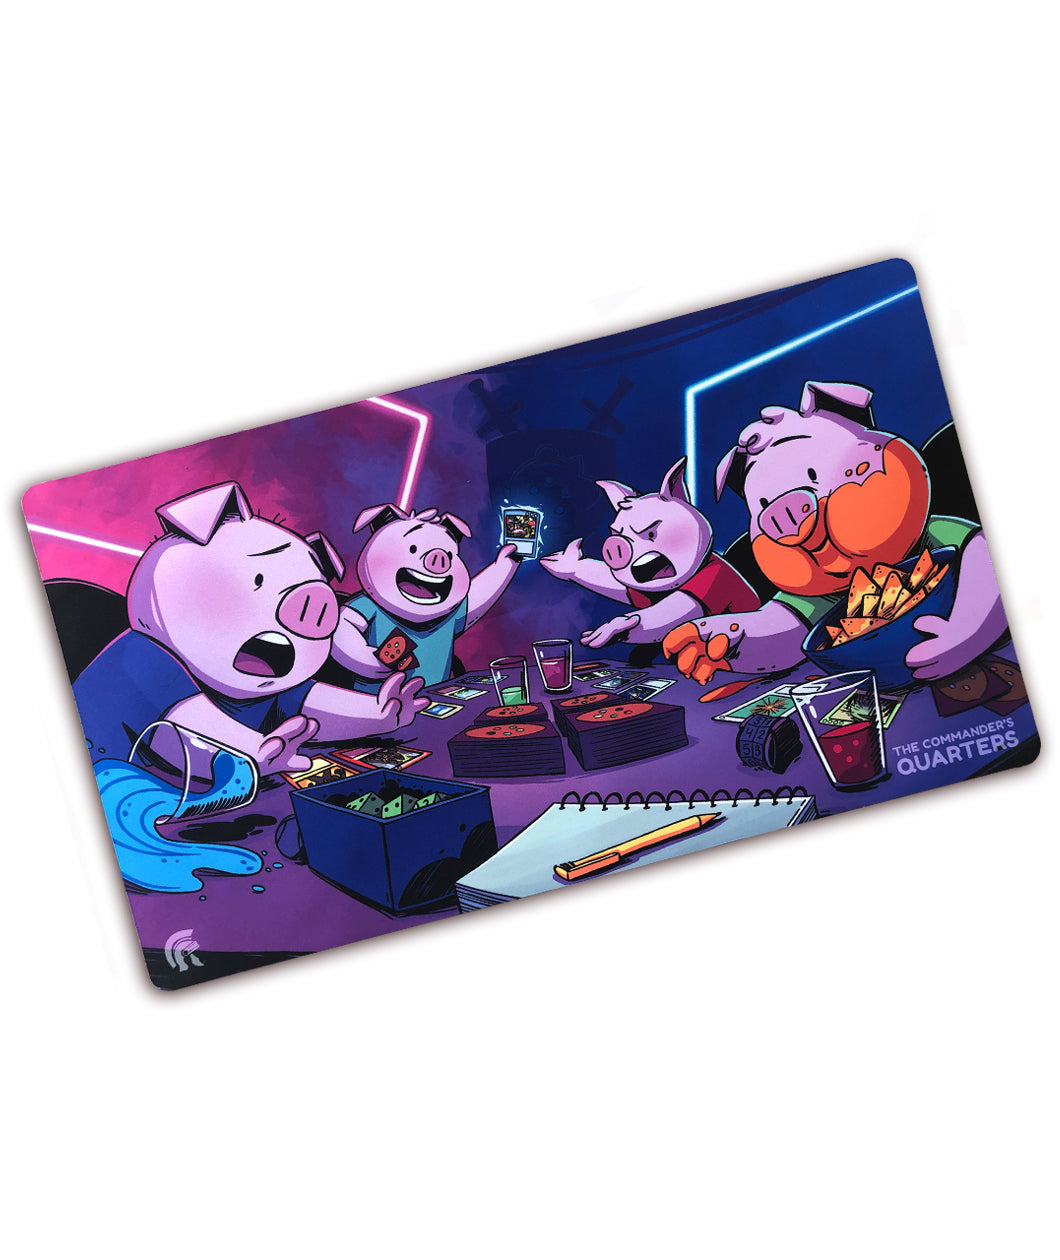 Pigs Playing Magic Kickstarter Playmat (Patreon Only - Signed and Unsigned Options)